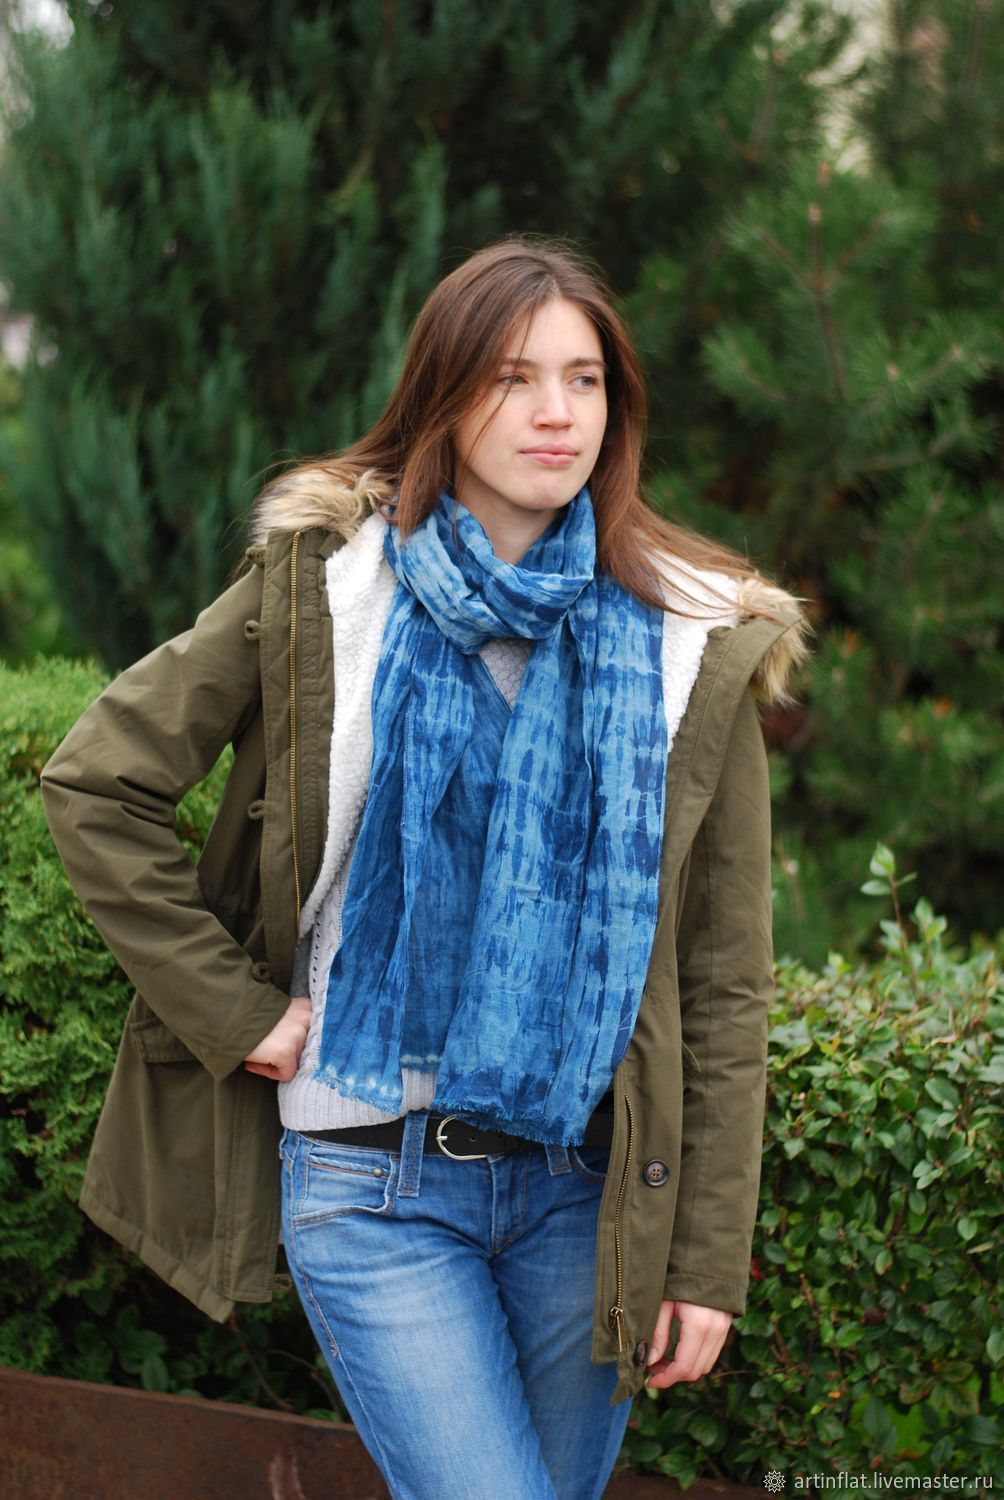 Scarf flaxen 'Water surface' striped Indigo blue and white, Scarves, Moscow,  Фото №1